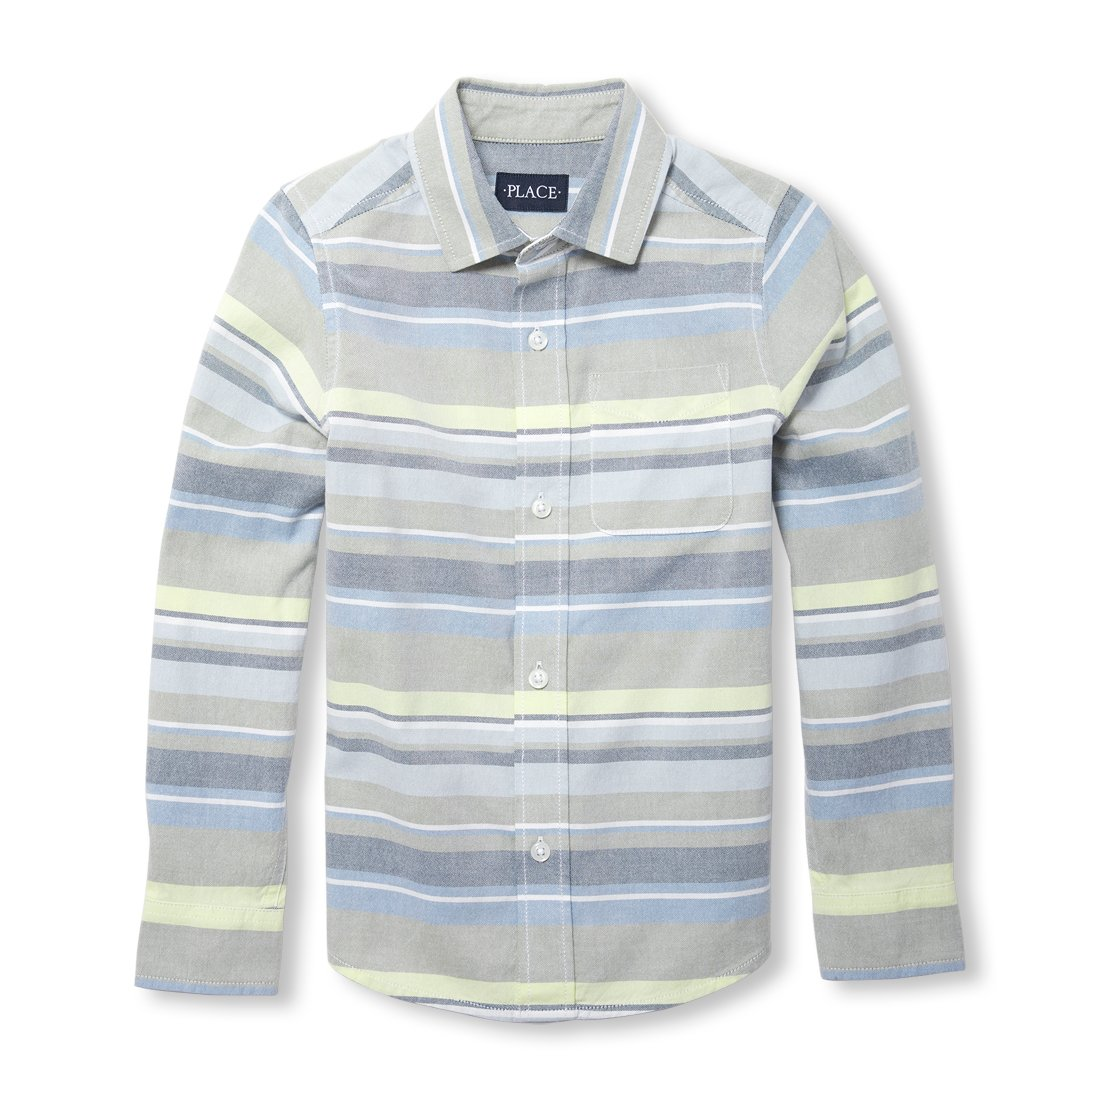 The Children's Place Big Boys' Striped Long Sleeve Button Down Shirt